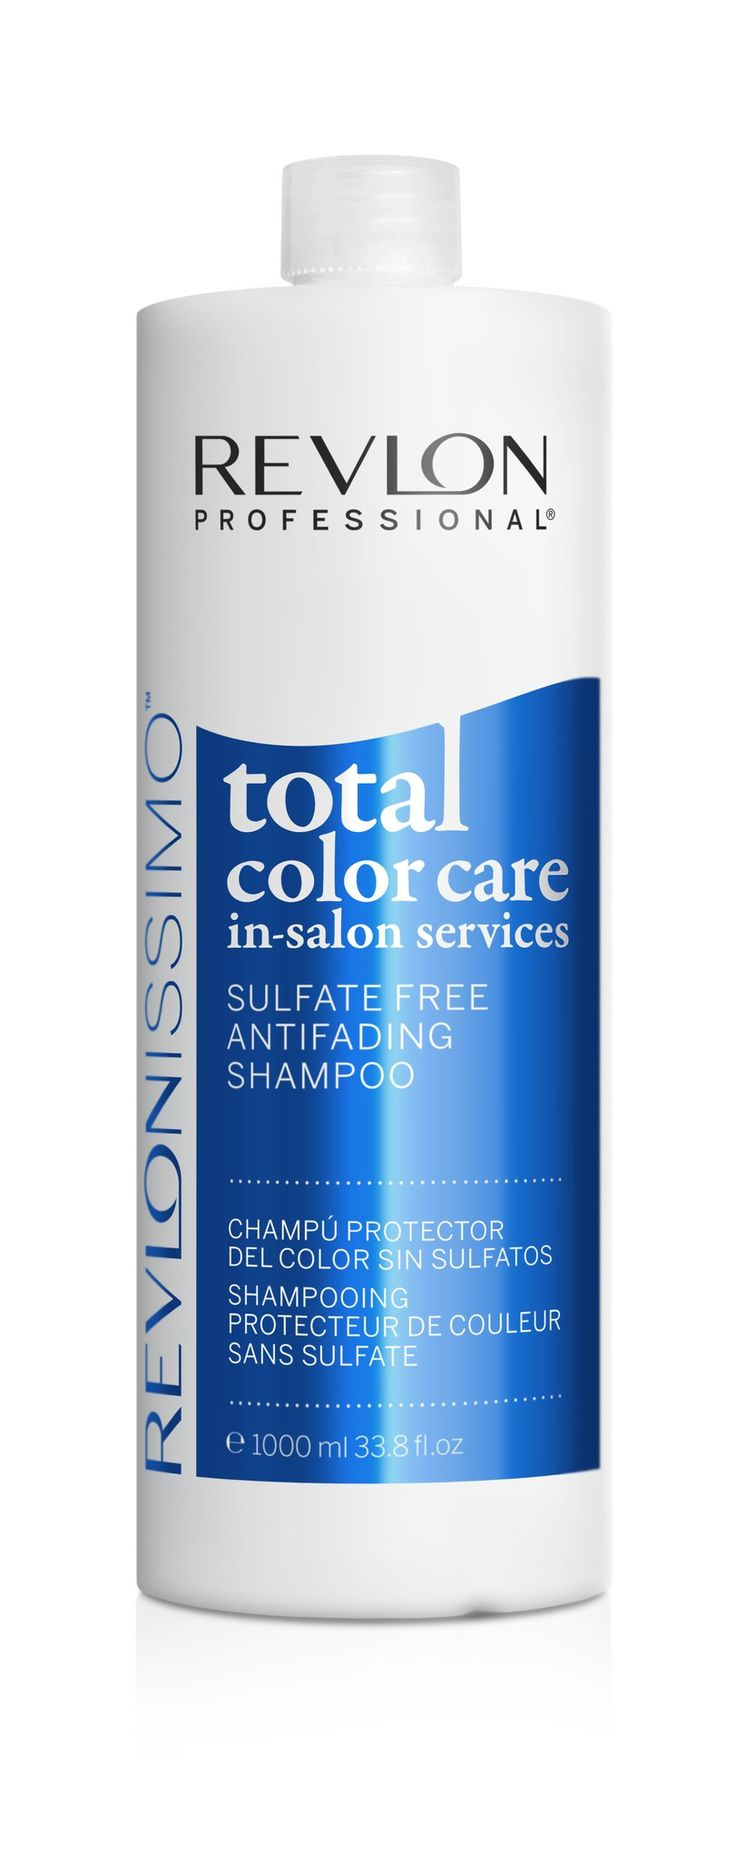 Revlon Professional Revlonissimo total color care in-salon services Sulfate Free Antifading Shampoo 1000ml.